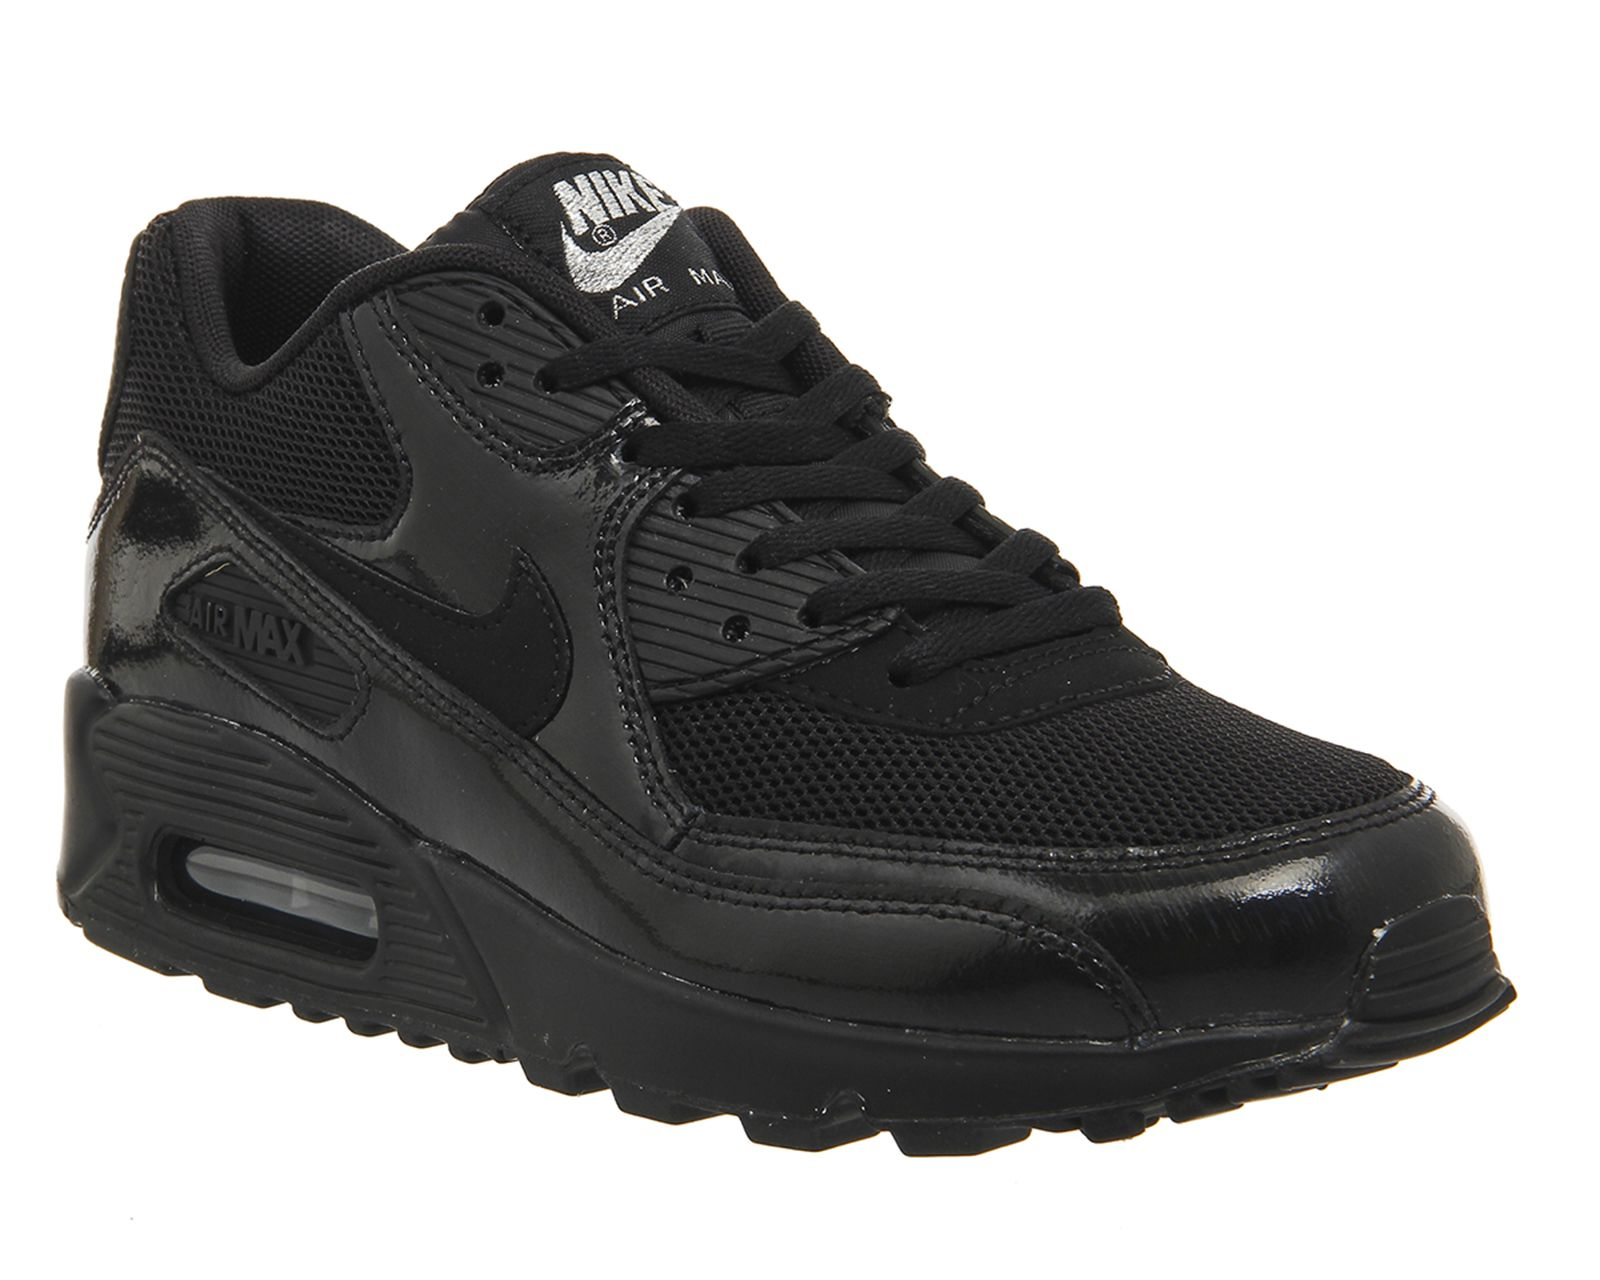 Buy Black Black Metallic Silver Nike Air Max 90 (w) from OFFICE.co